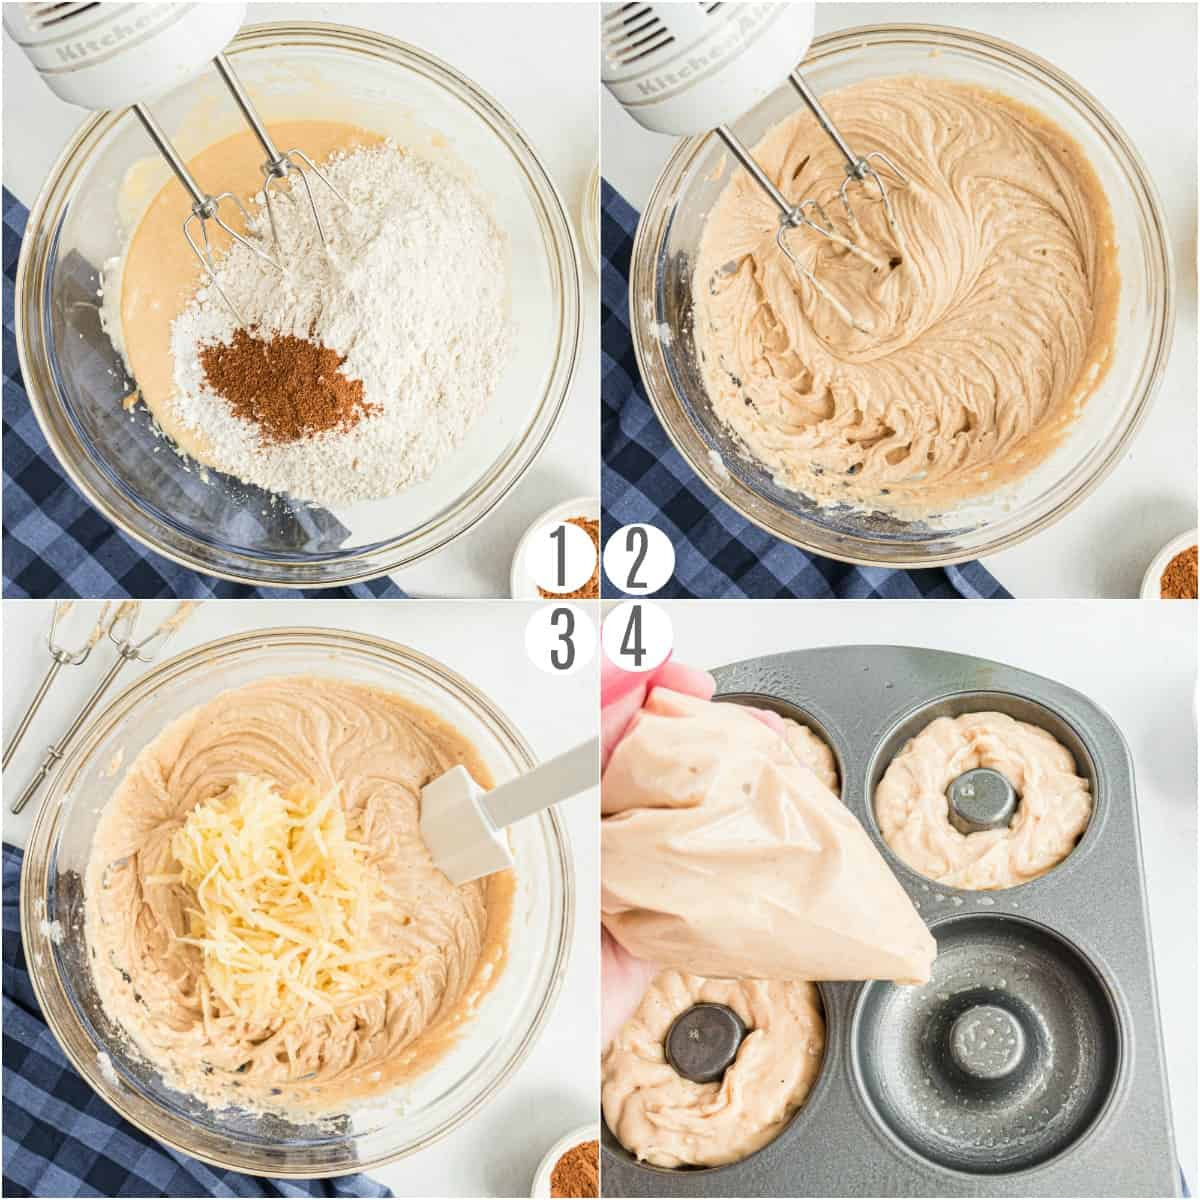 Step by step instructions to make apple cider donuts in the oven.